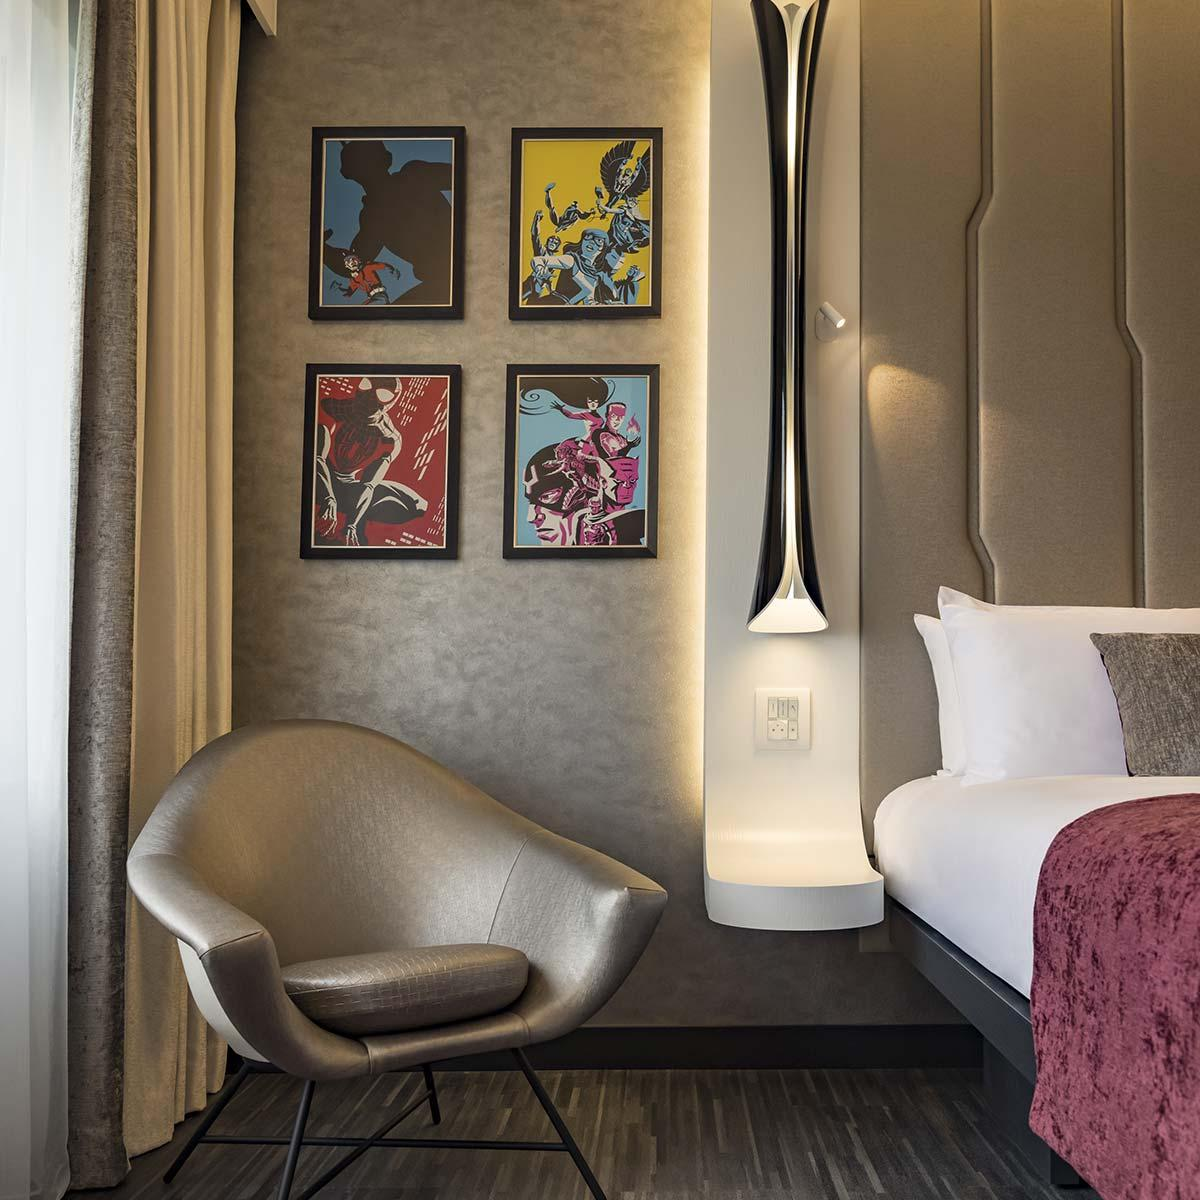 Club Rooms, Suites and a Club Lounge fit for Tony Stark